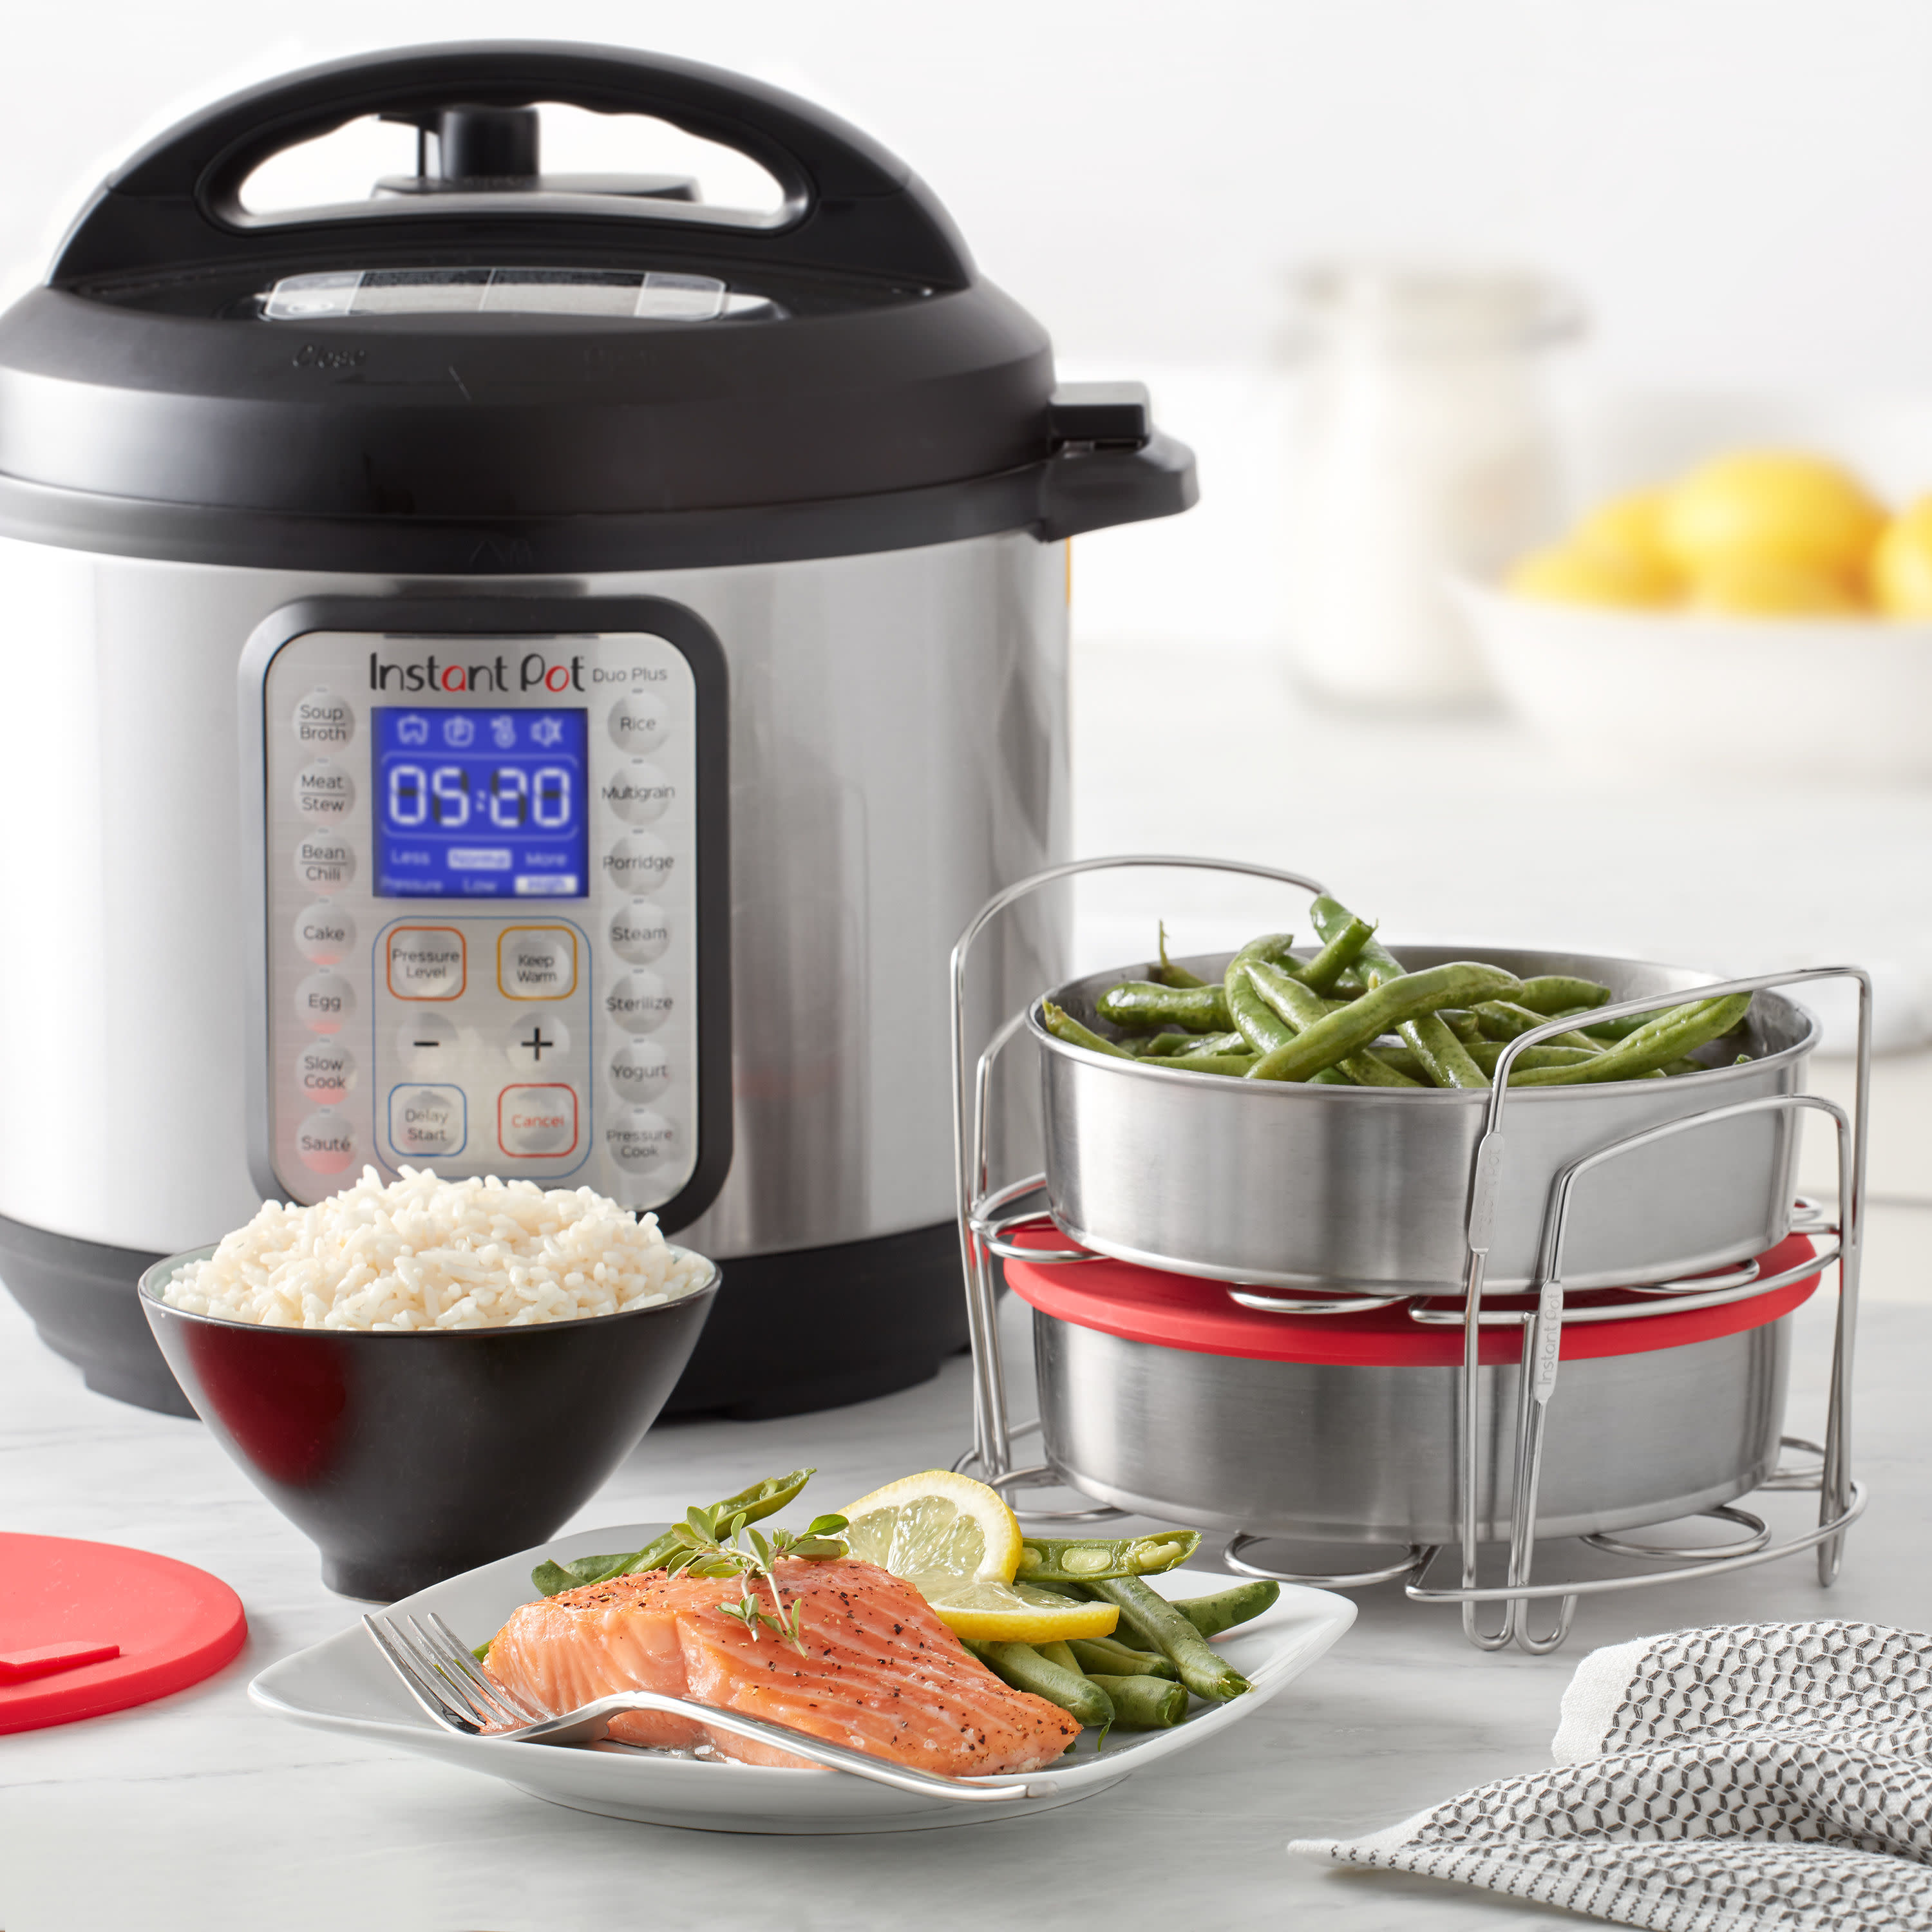 instant pot official 8 piece cook bake set 2 pans 2 wire racks 2 red silicone lids 1 removable divider and removable base